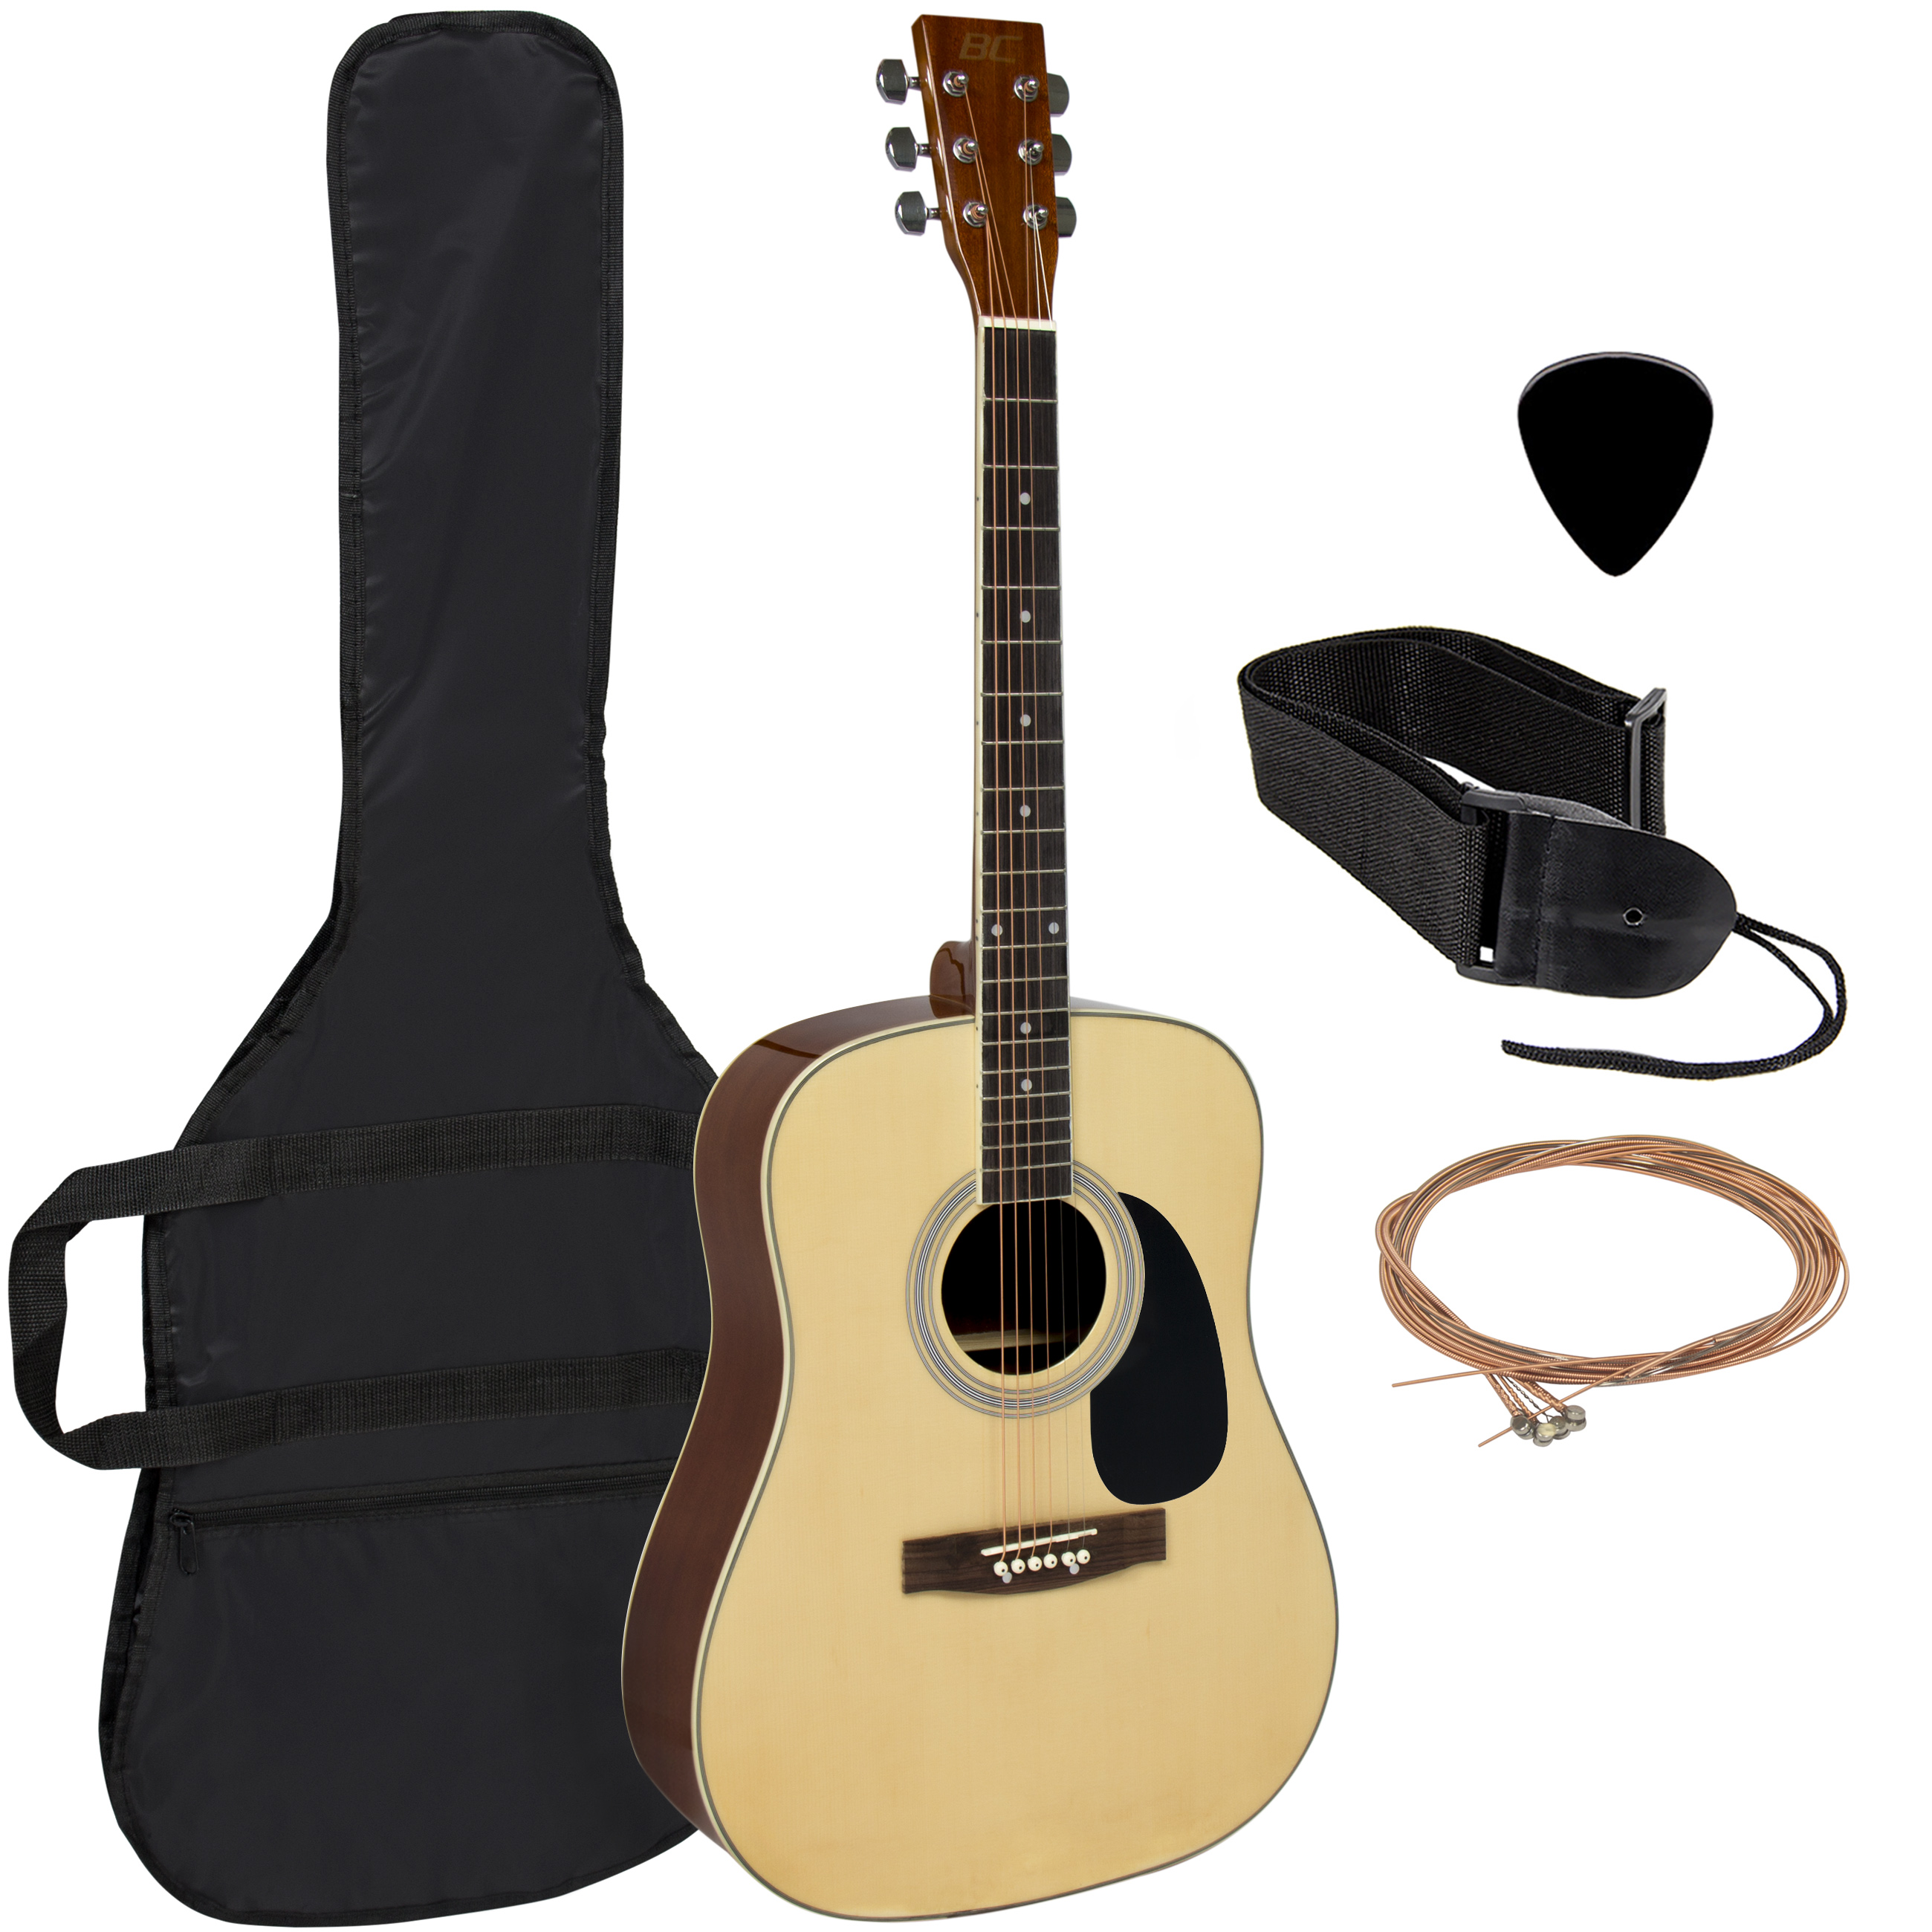 "Best Choice Products Acoustic Guitar 41"" Full Size Natural Includes Guitar Case, Strap and More"